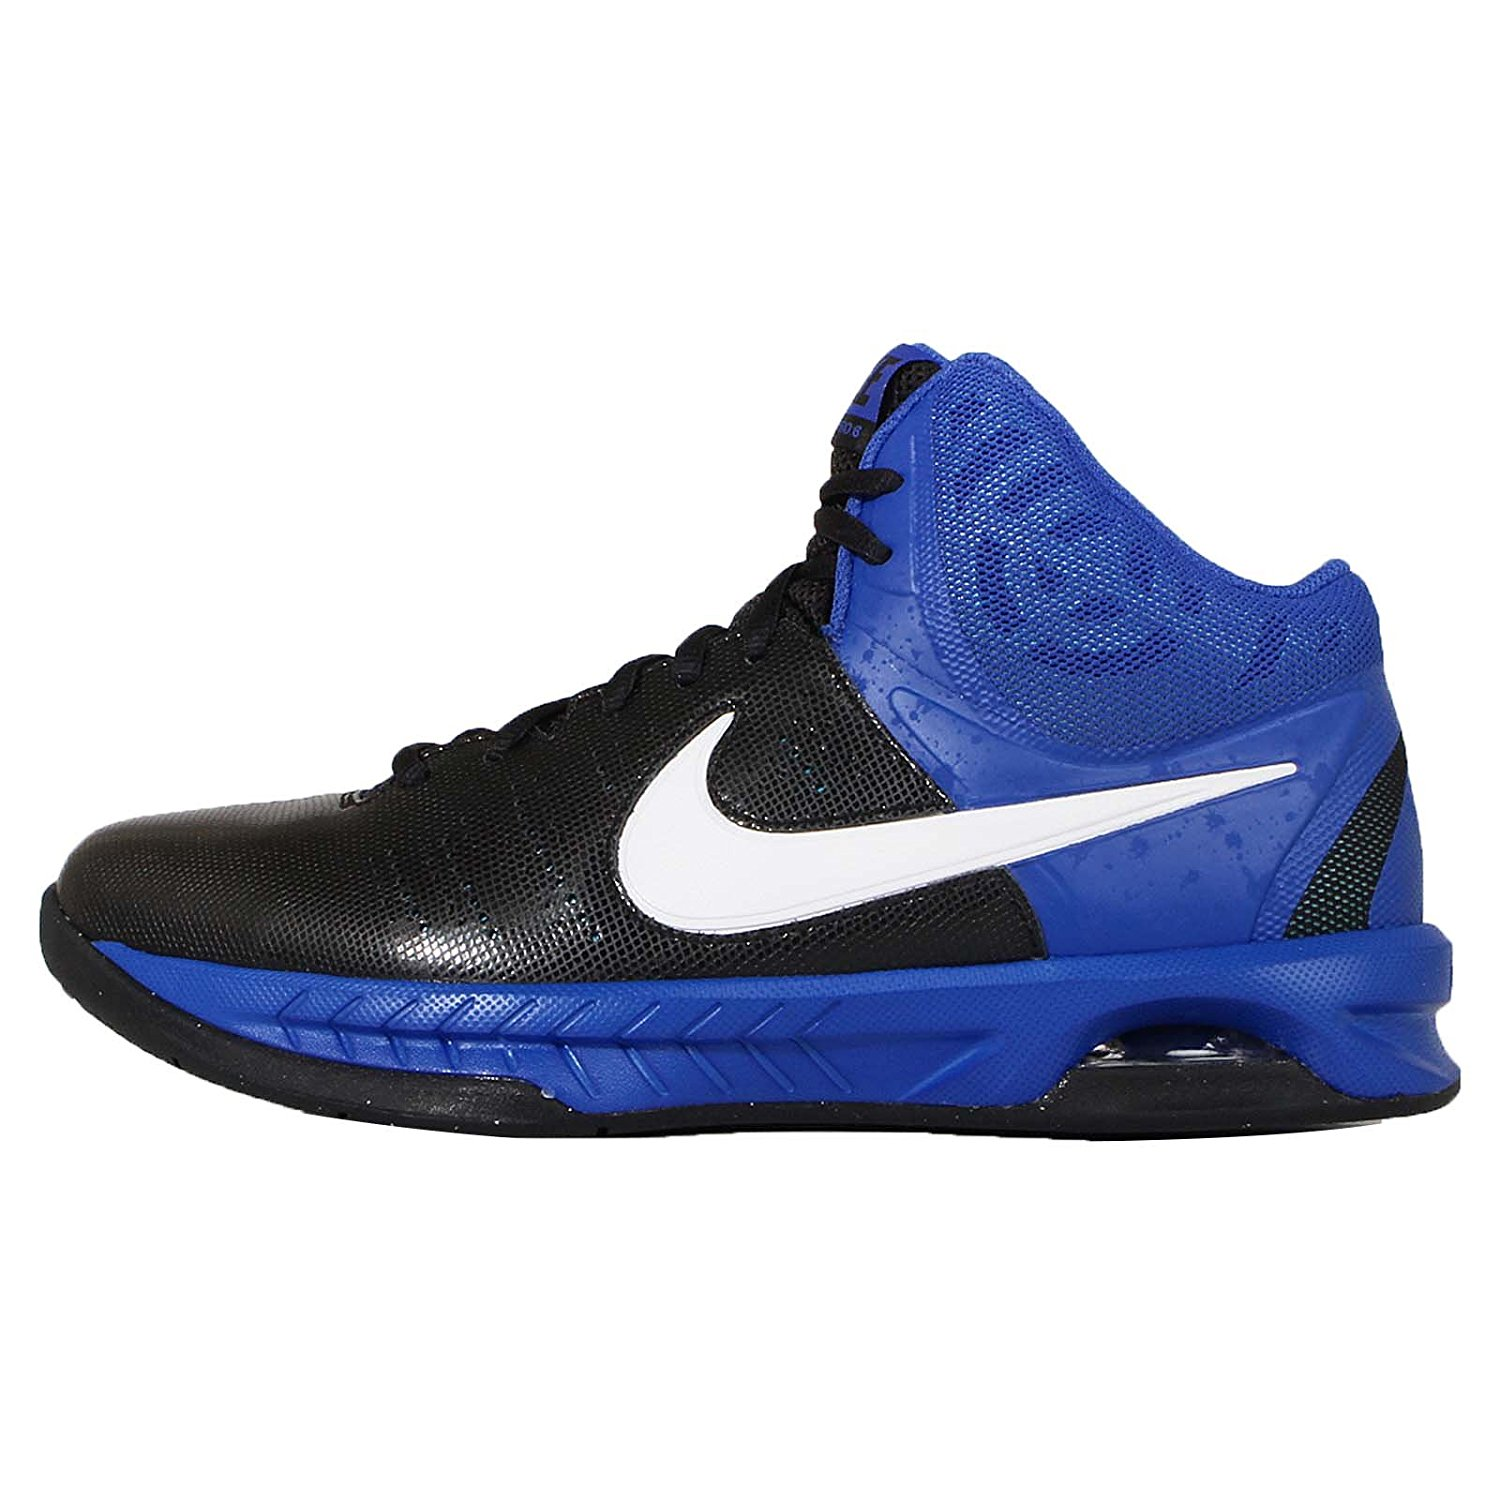 b7090f10be48 Get Quotations · Nike Men s Air Visi Pro VI